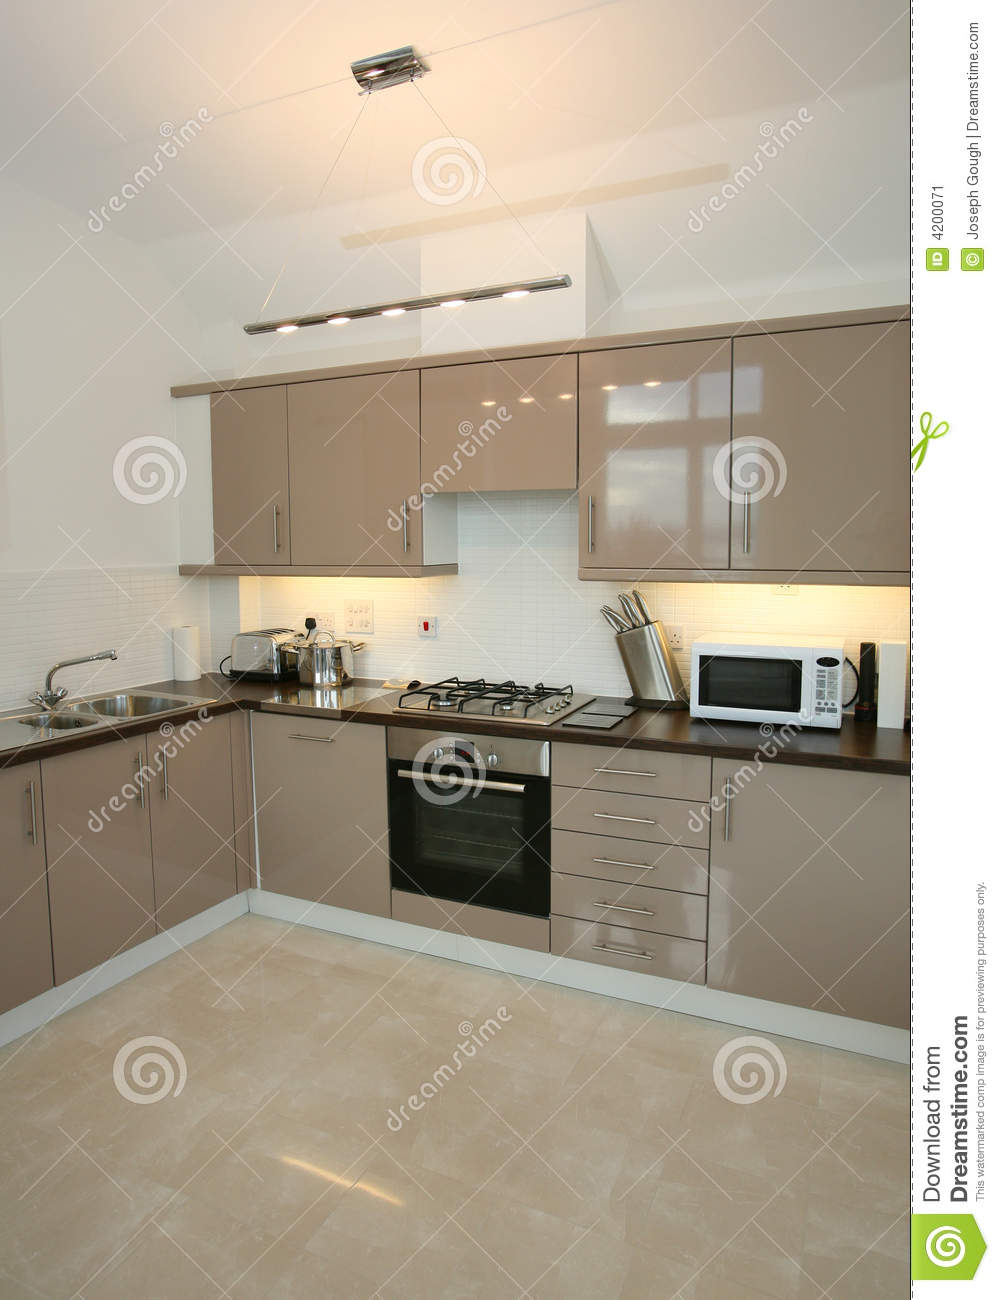 Modern Luxury Home Kitchen Interior Stock Image Image